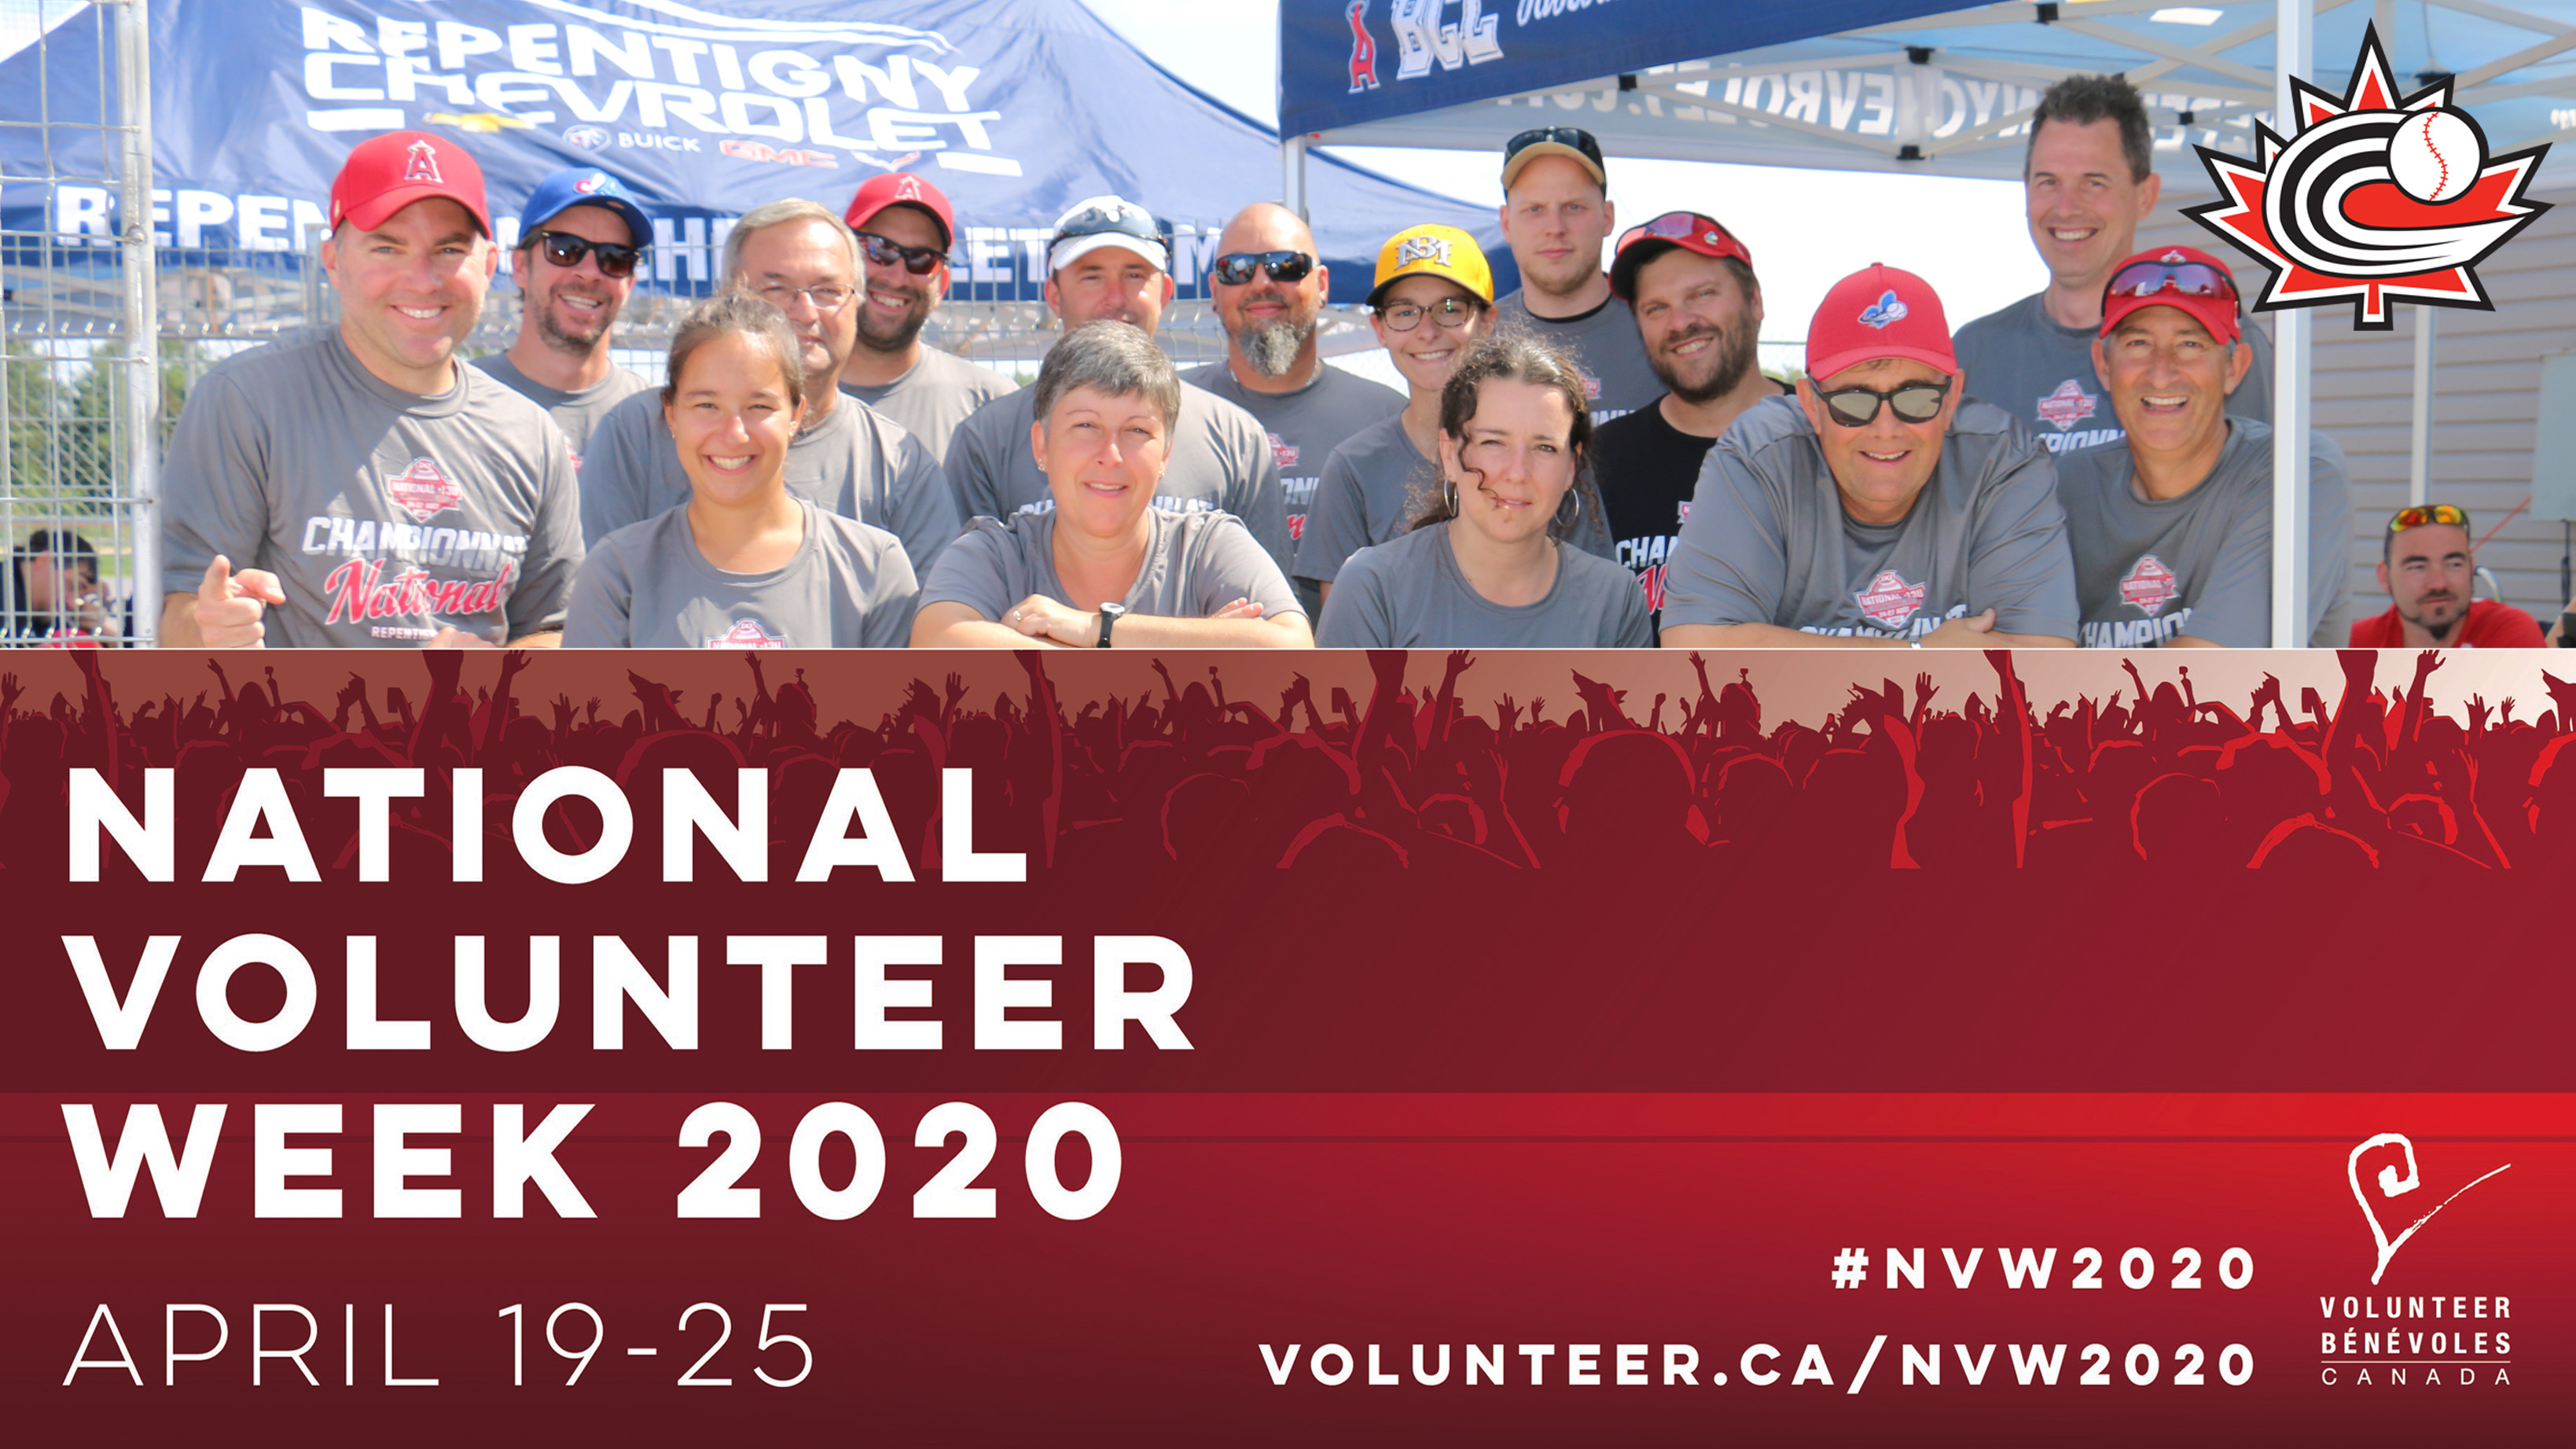 NATIONAL VOLUNTEER WEEK: Thank your baseball volunteers!